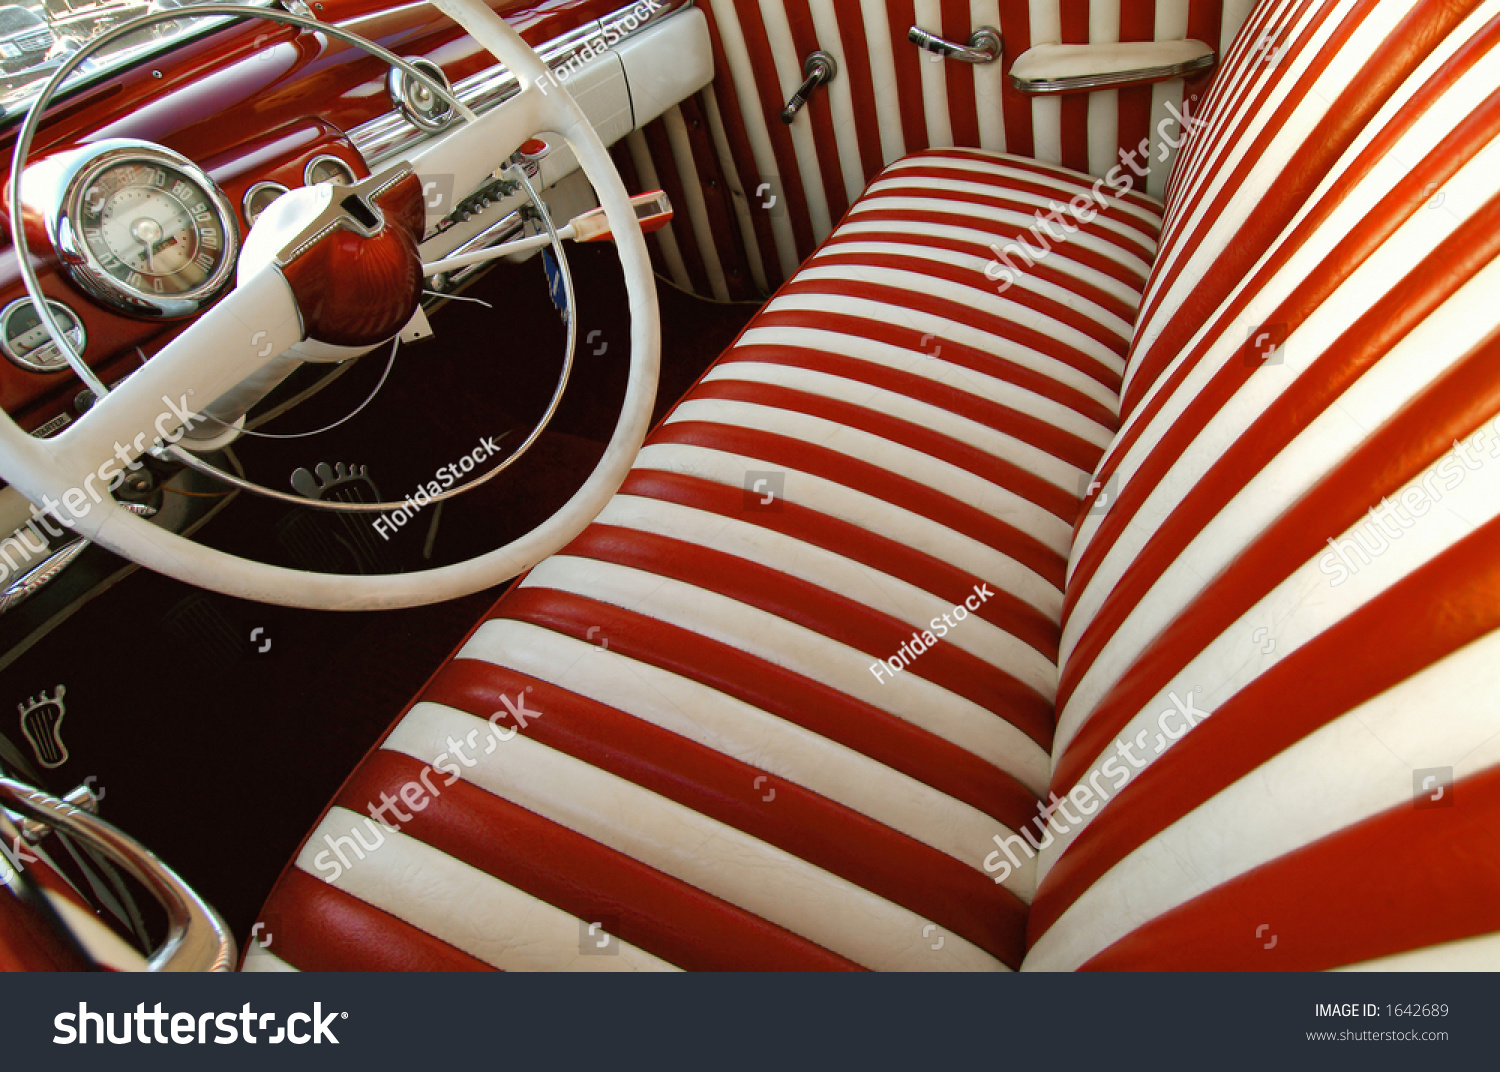 candy stripe upholstery on restored vintage stock photo 1642689 shutterstock. Black Bedroom Furniture Sets. Home Design Ideas